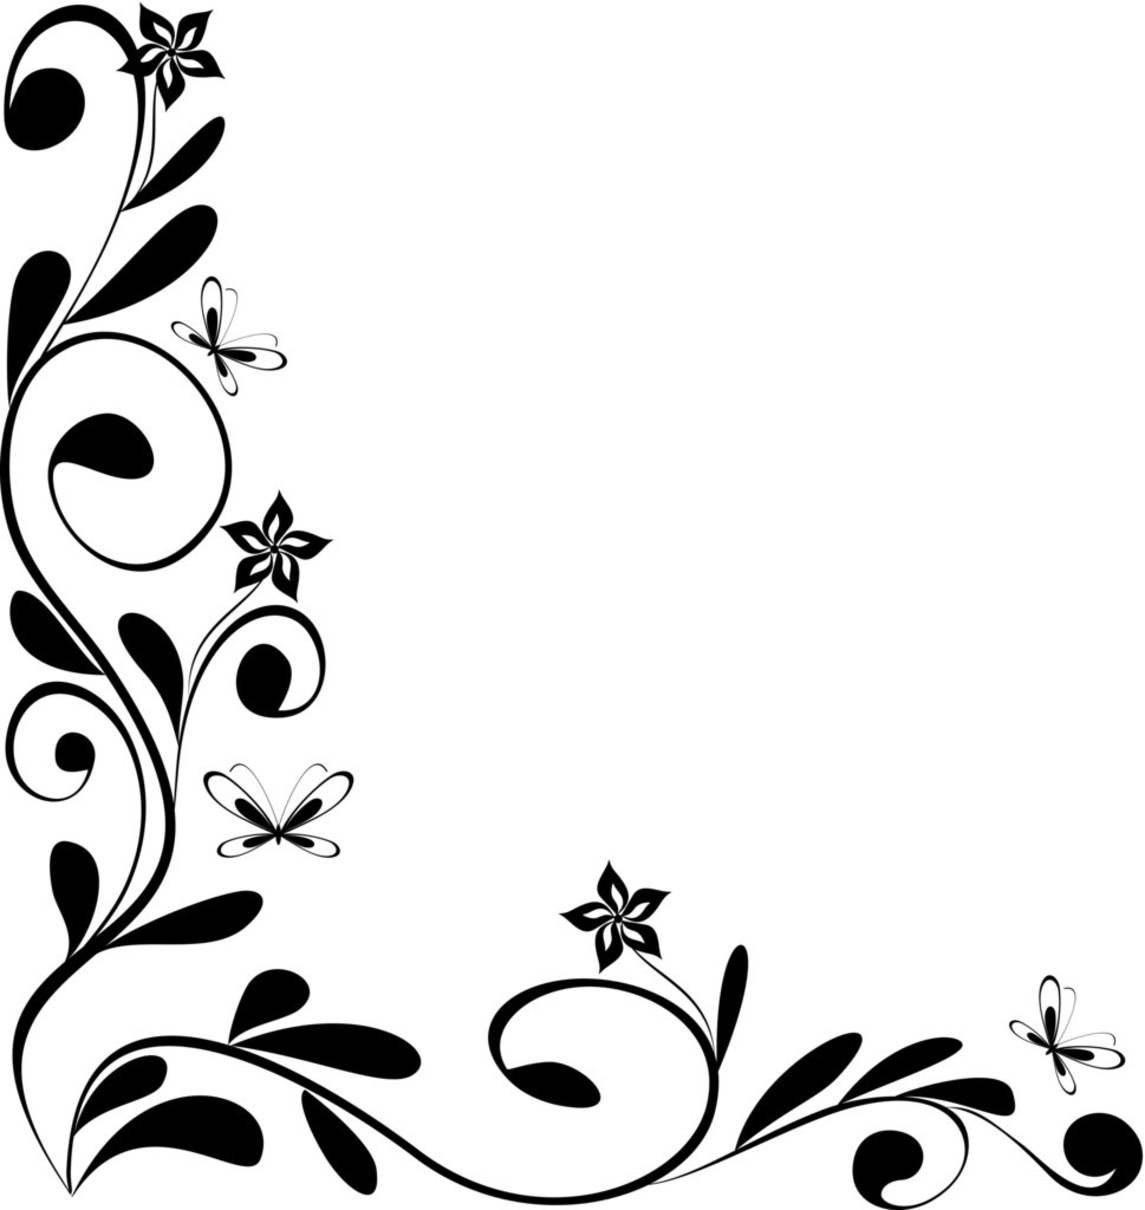 Simple Corner Border Clipart.